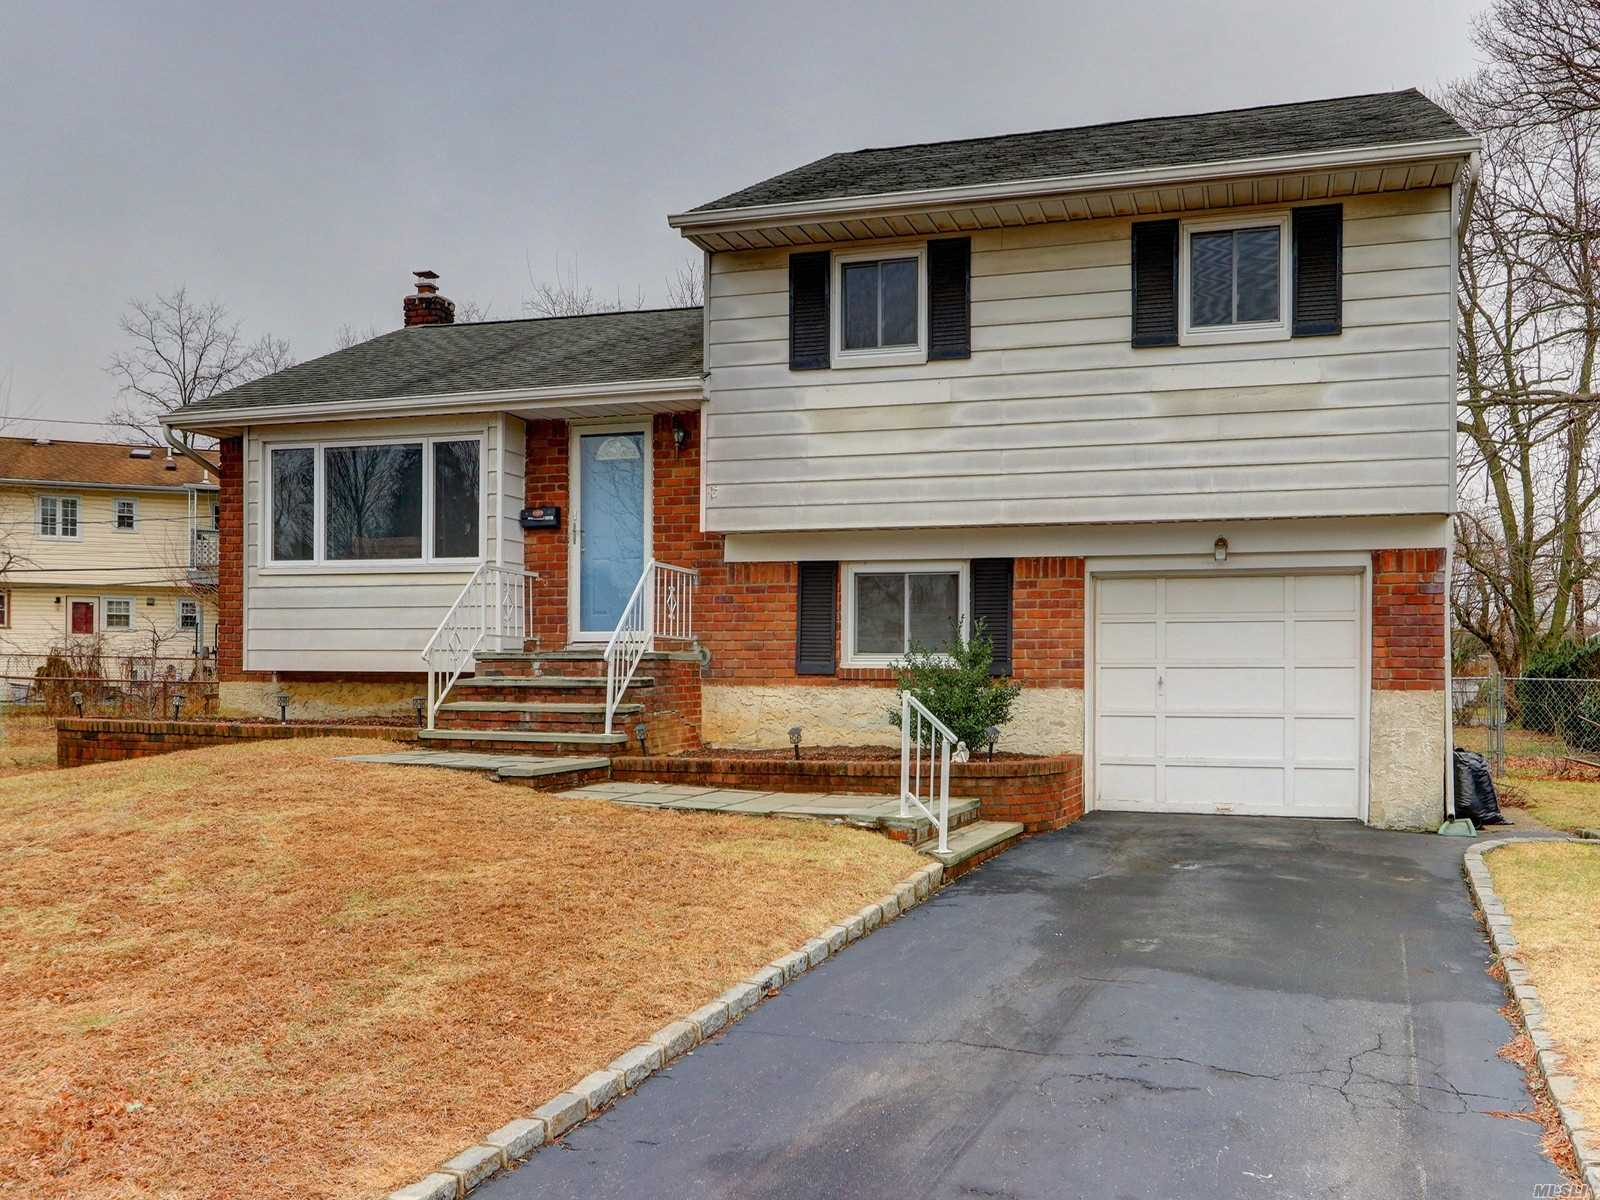 Spacious 3 Bedroom Split Hardwood Floors Thru-Out, Hugh Basement Unfinished With W/D Gas, Updated Gas Heat, 2 Year Old H/W Heater Park Size Fenced In Yard & Covered Patio